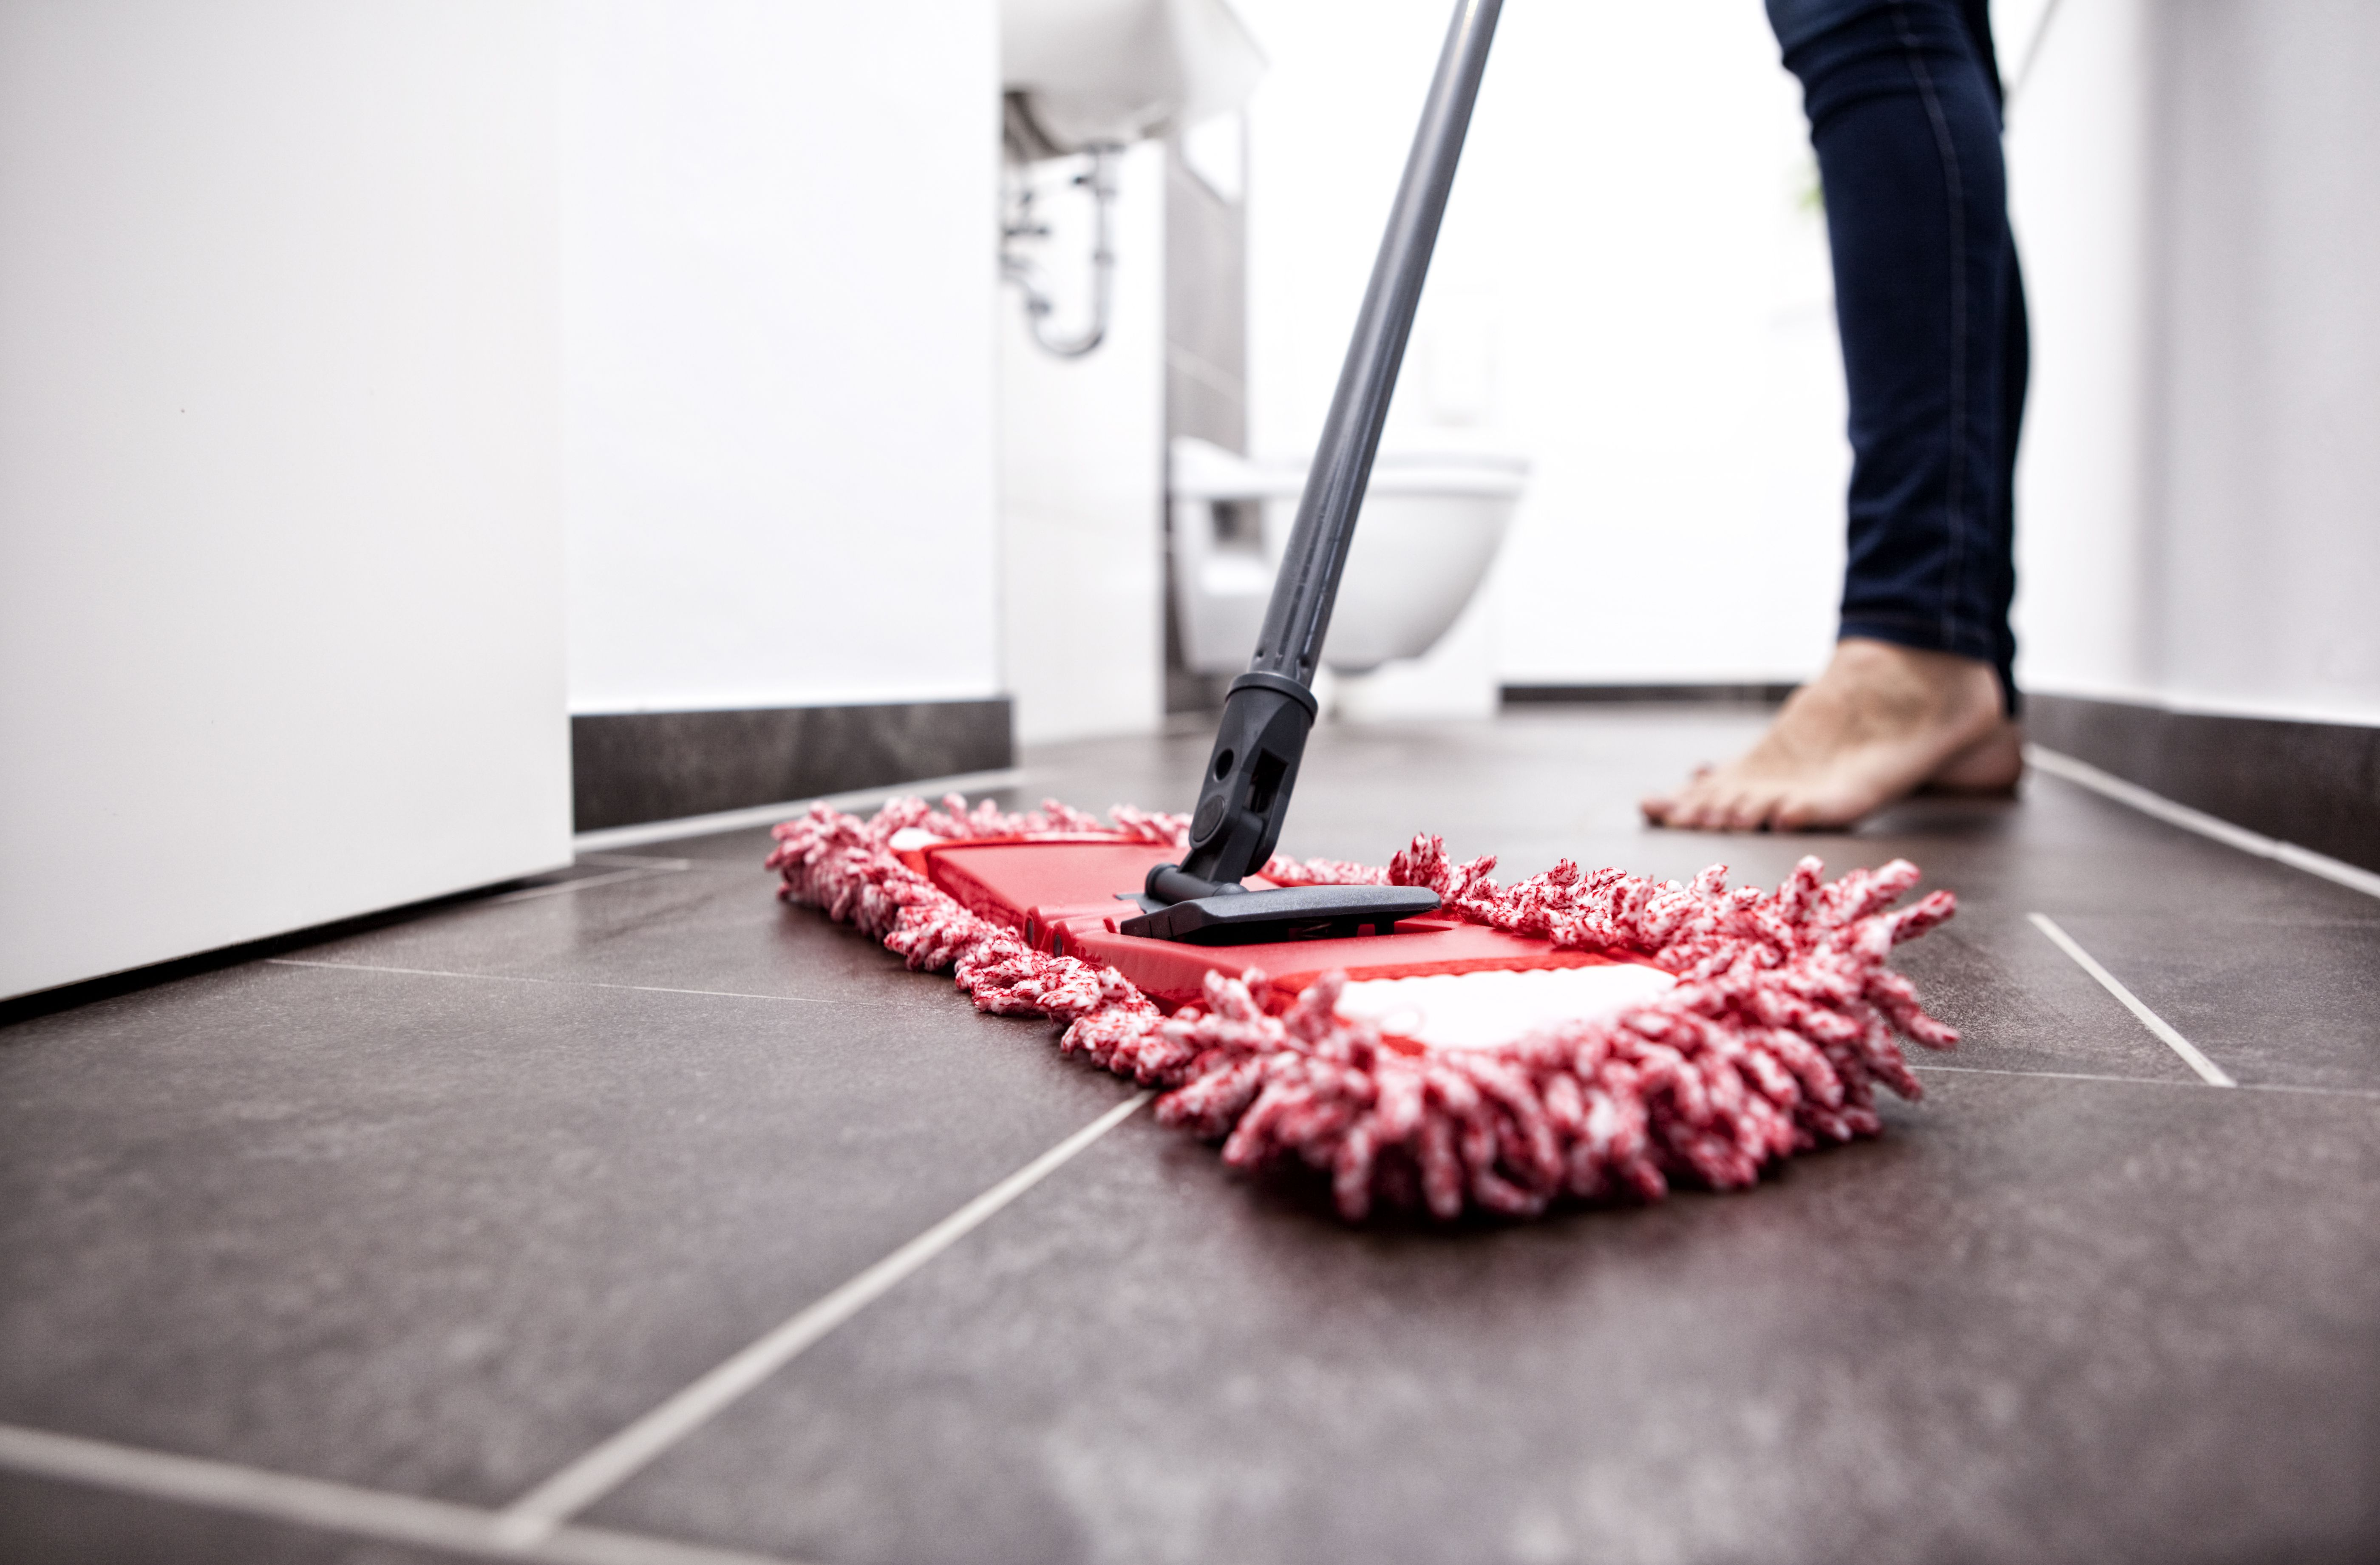 What To Know About Cleaning Self Adhesive Floor Tiles